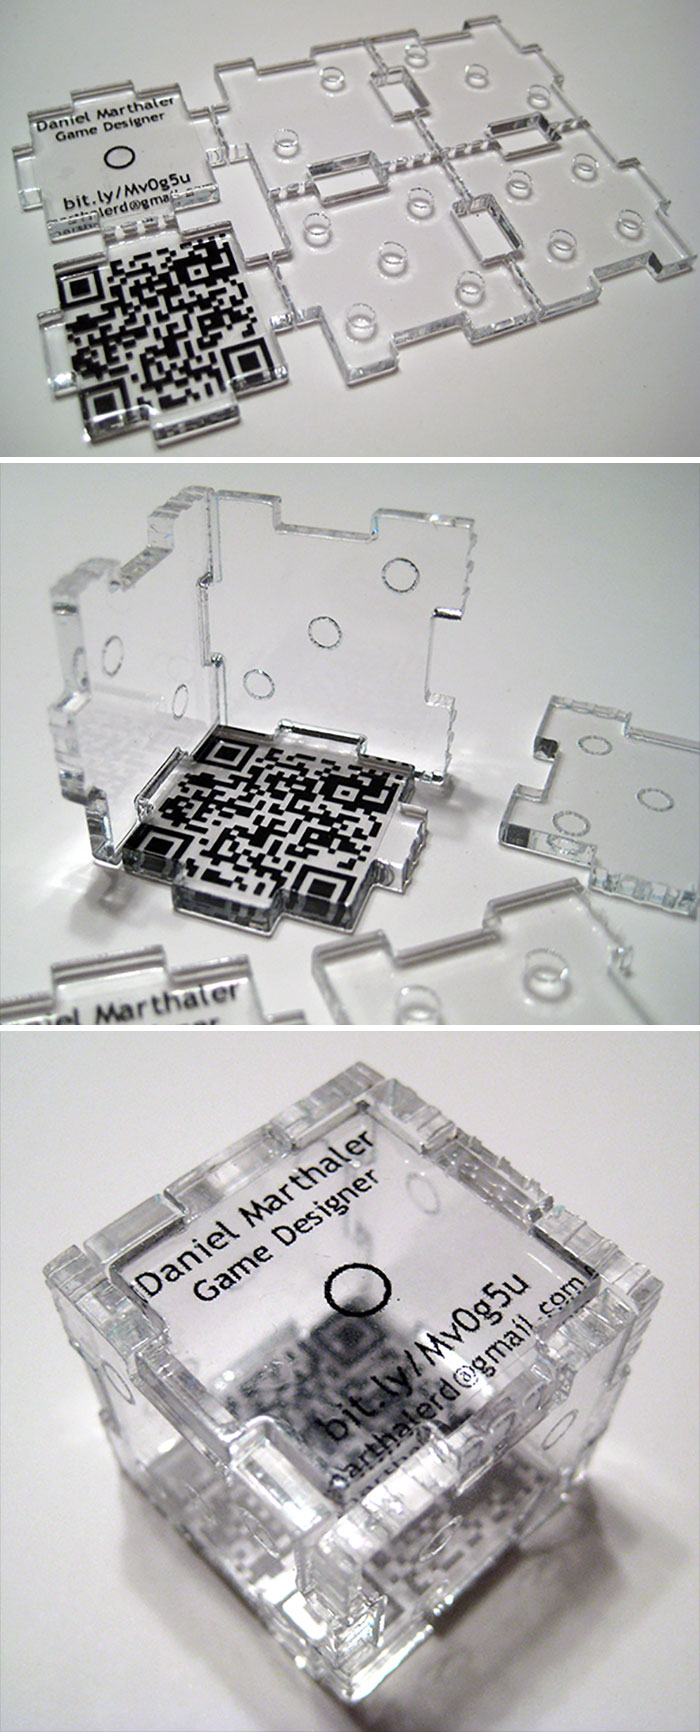 Game Designer's Business Card Which Can Be Built Into The Rolling Die